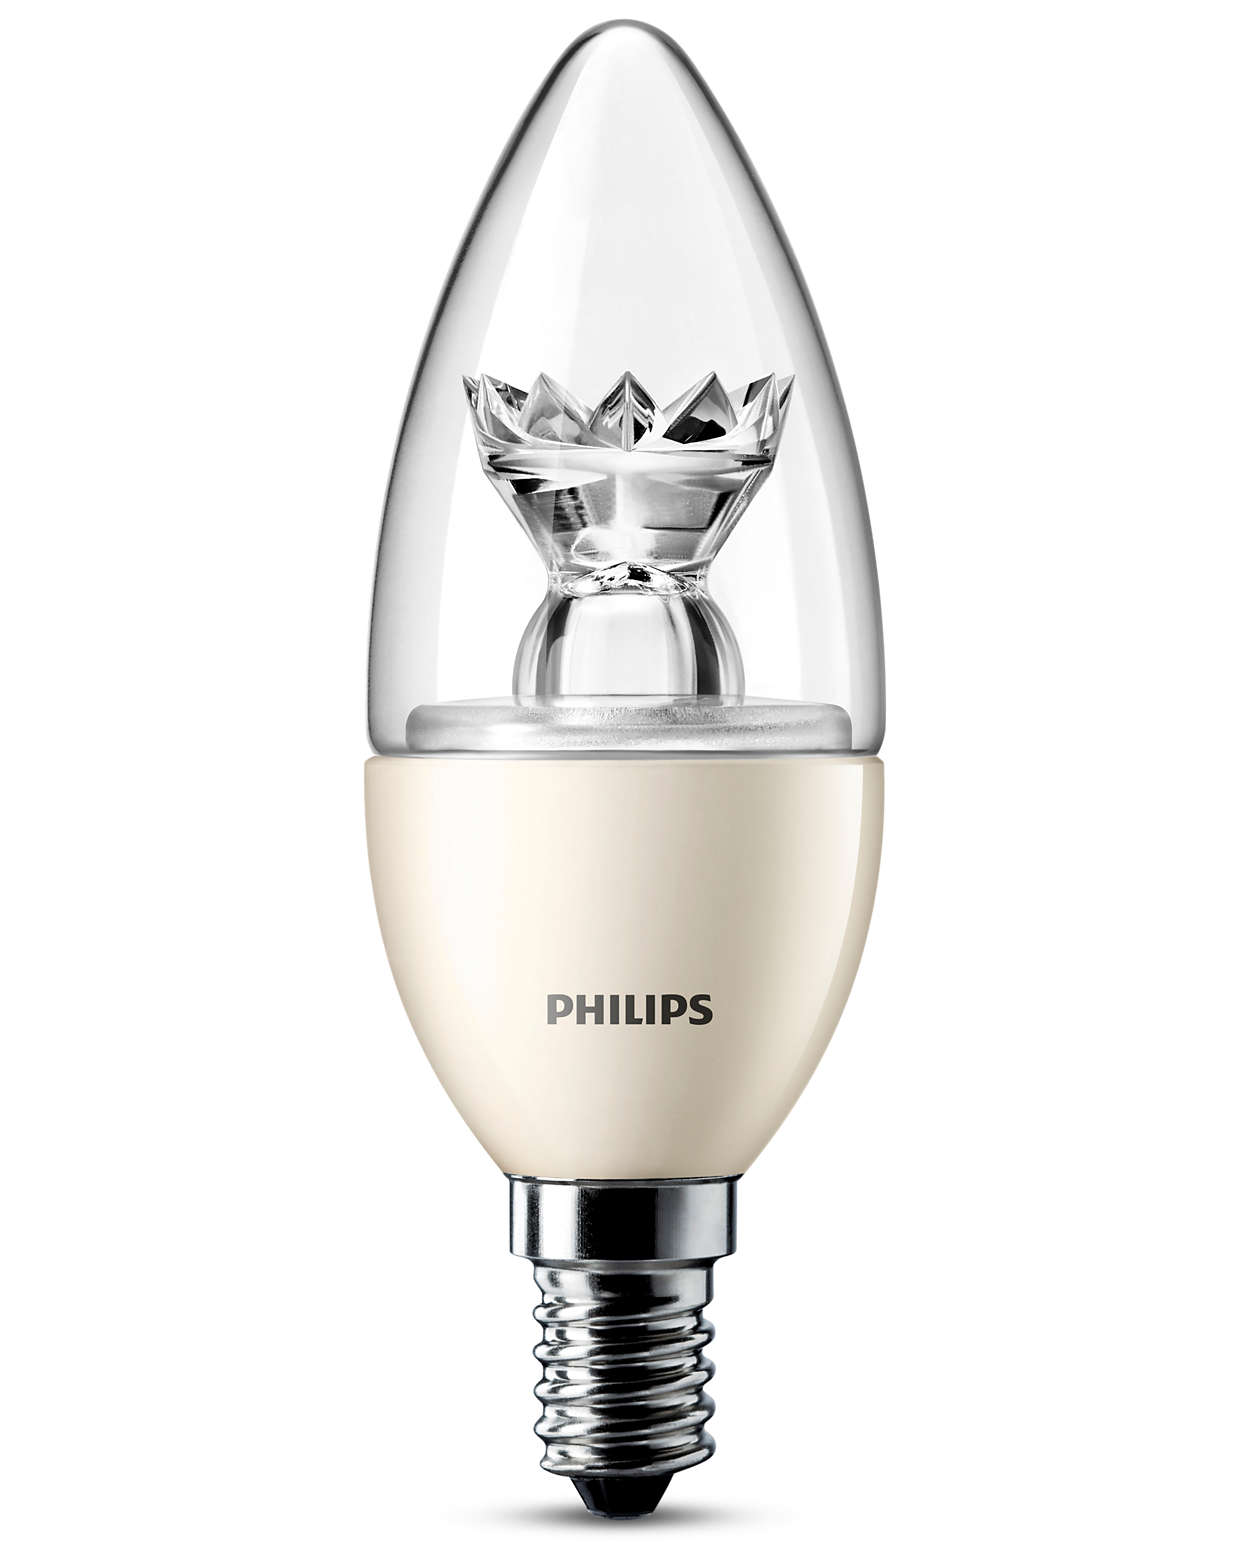 LED Kerzenlampe (dimmbar) 8718291741923 | Philips